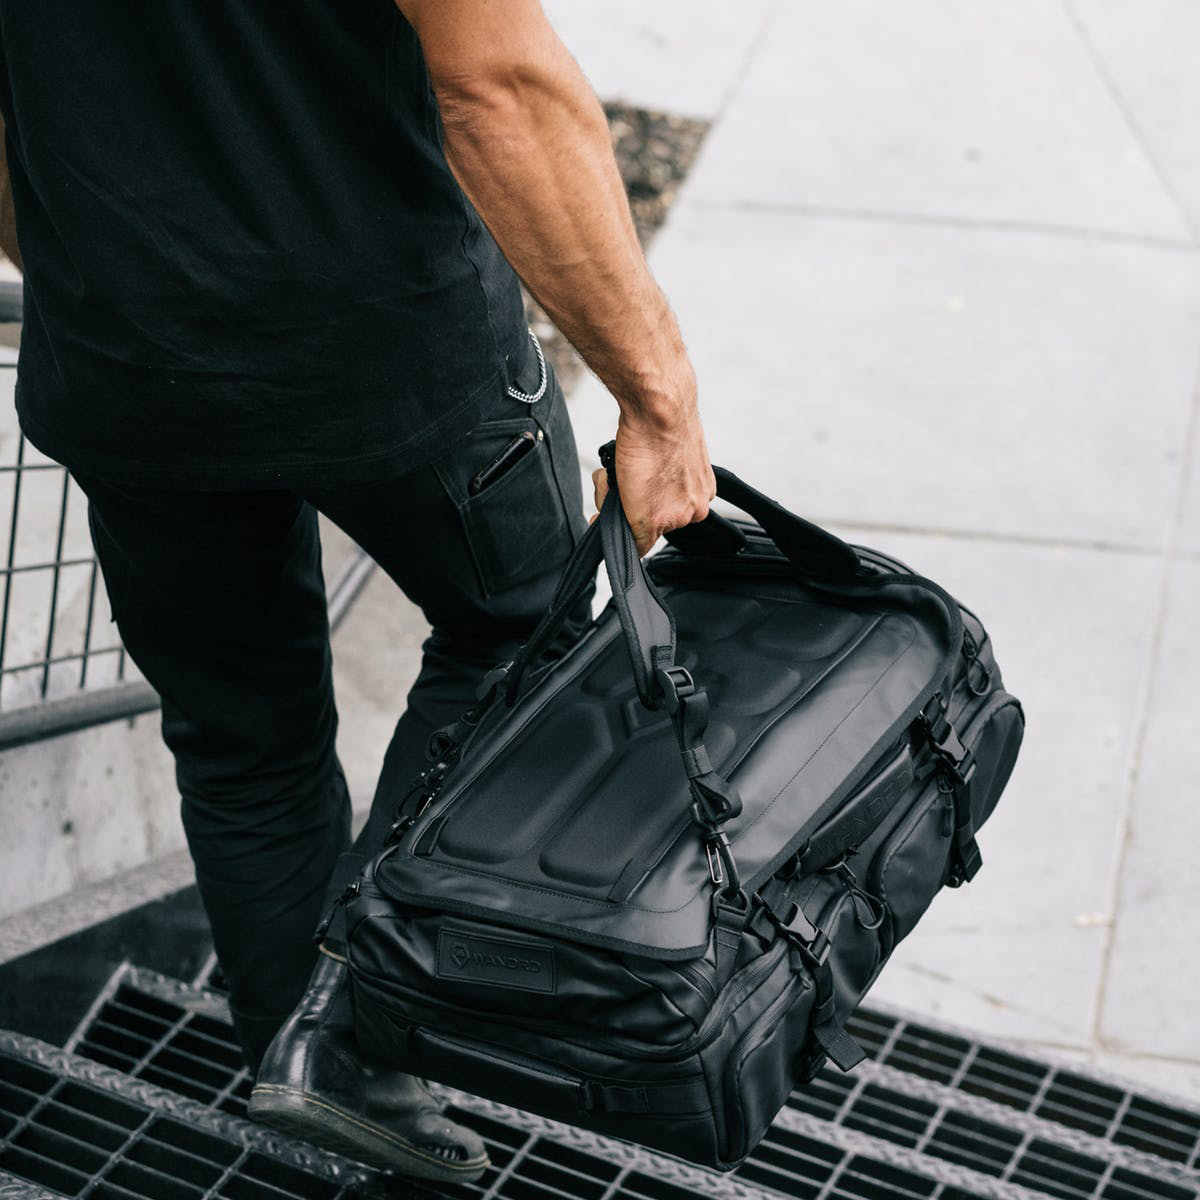 HEXAD Access duffel bag